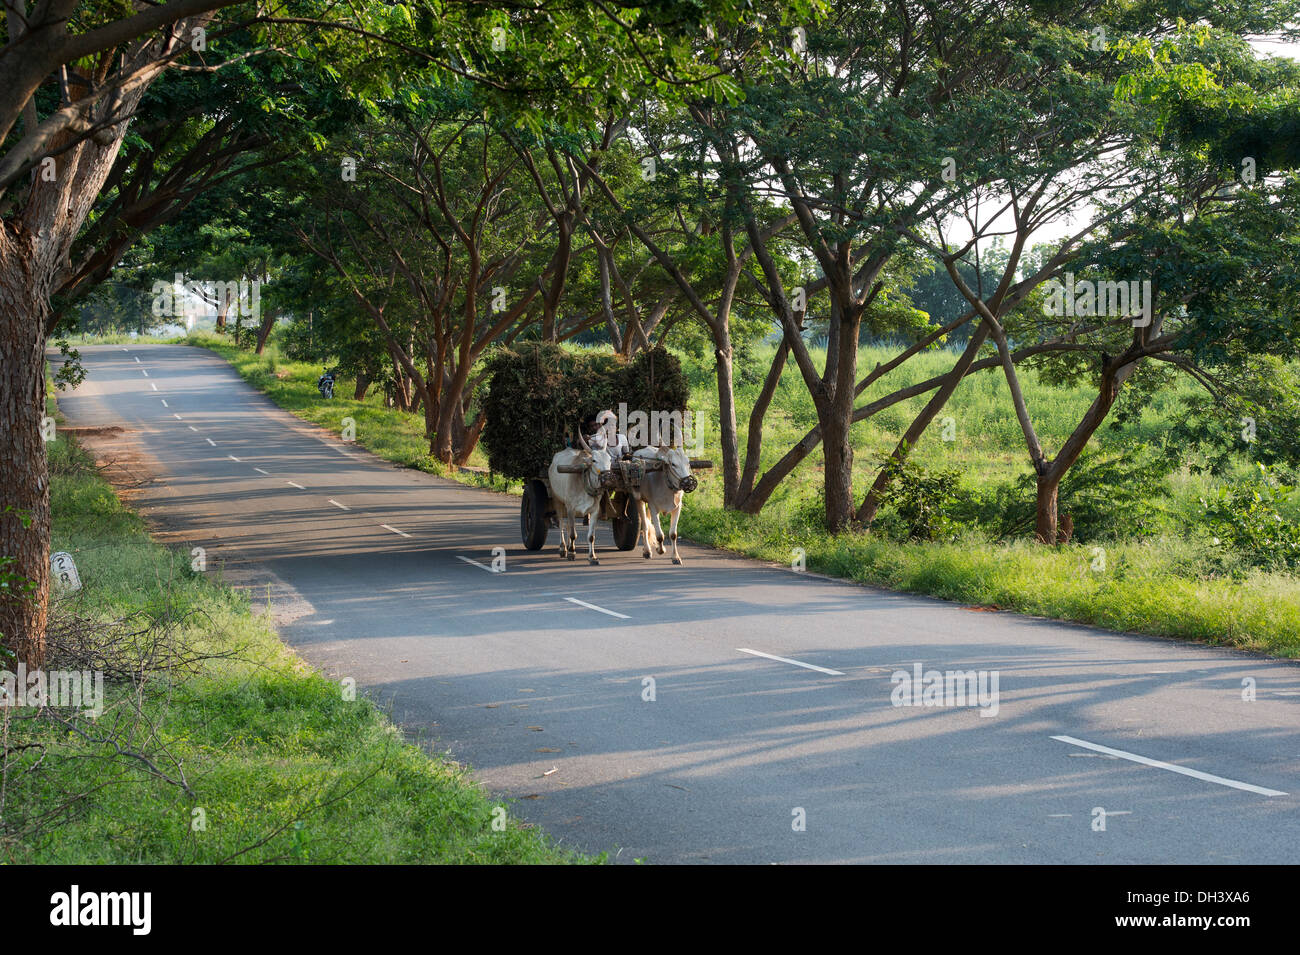 Indian farm worker with harvested peanut plants on a bullock cart in the rural indian countryside. Andhra Pradesh, India. - Stock Image